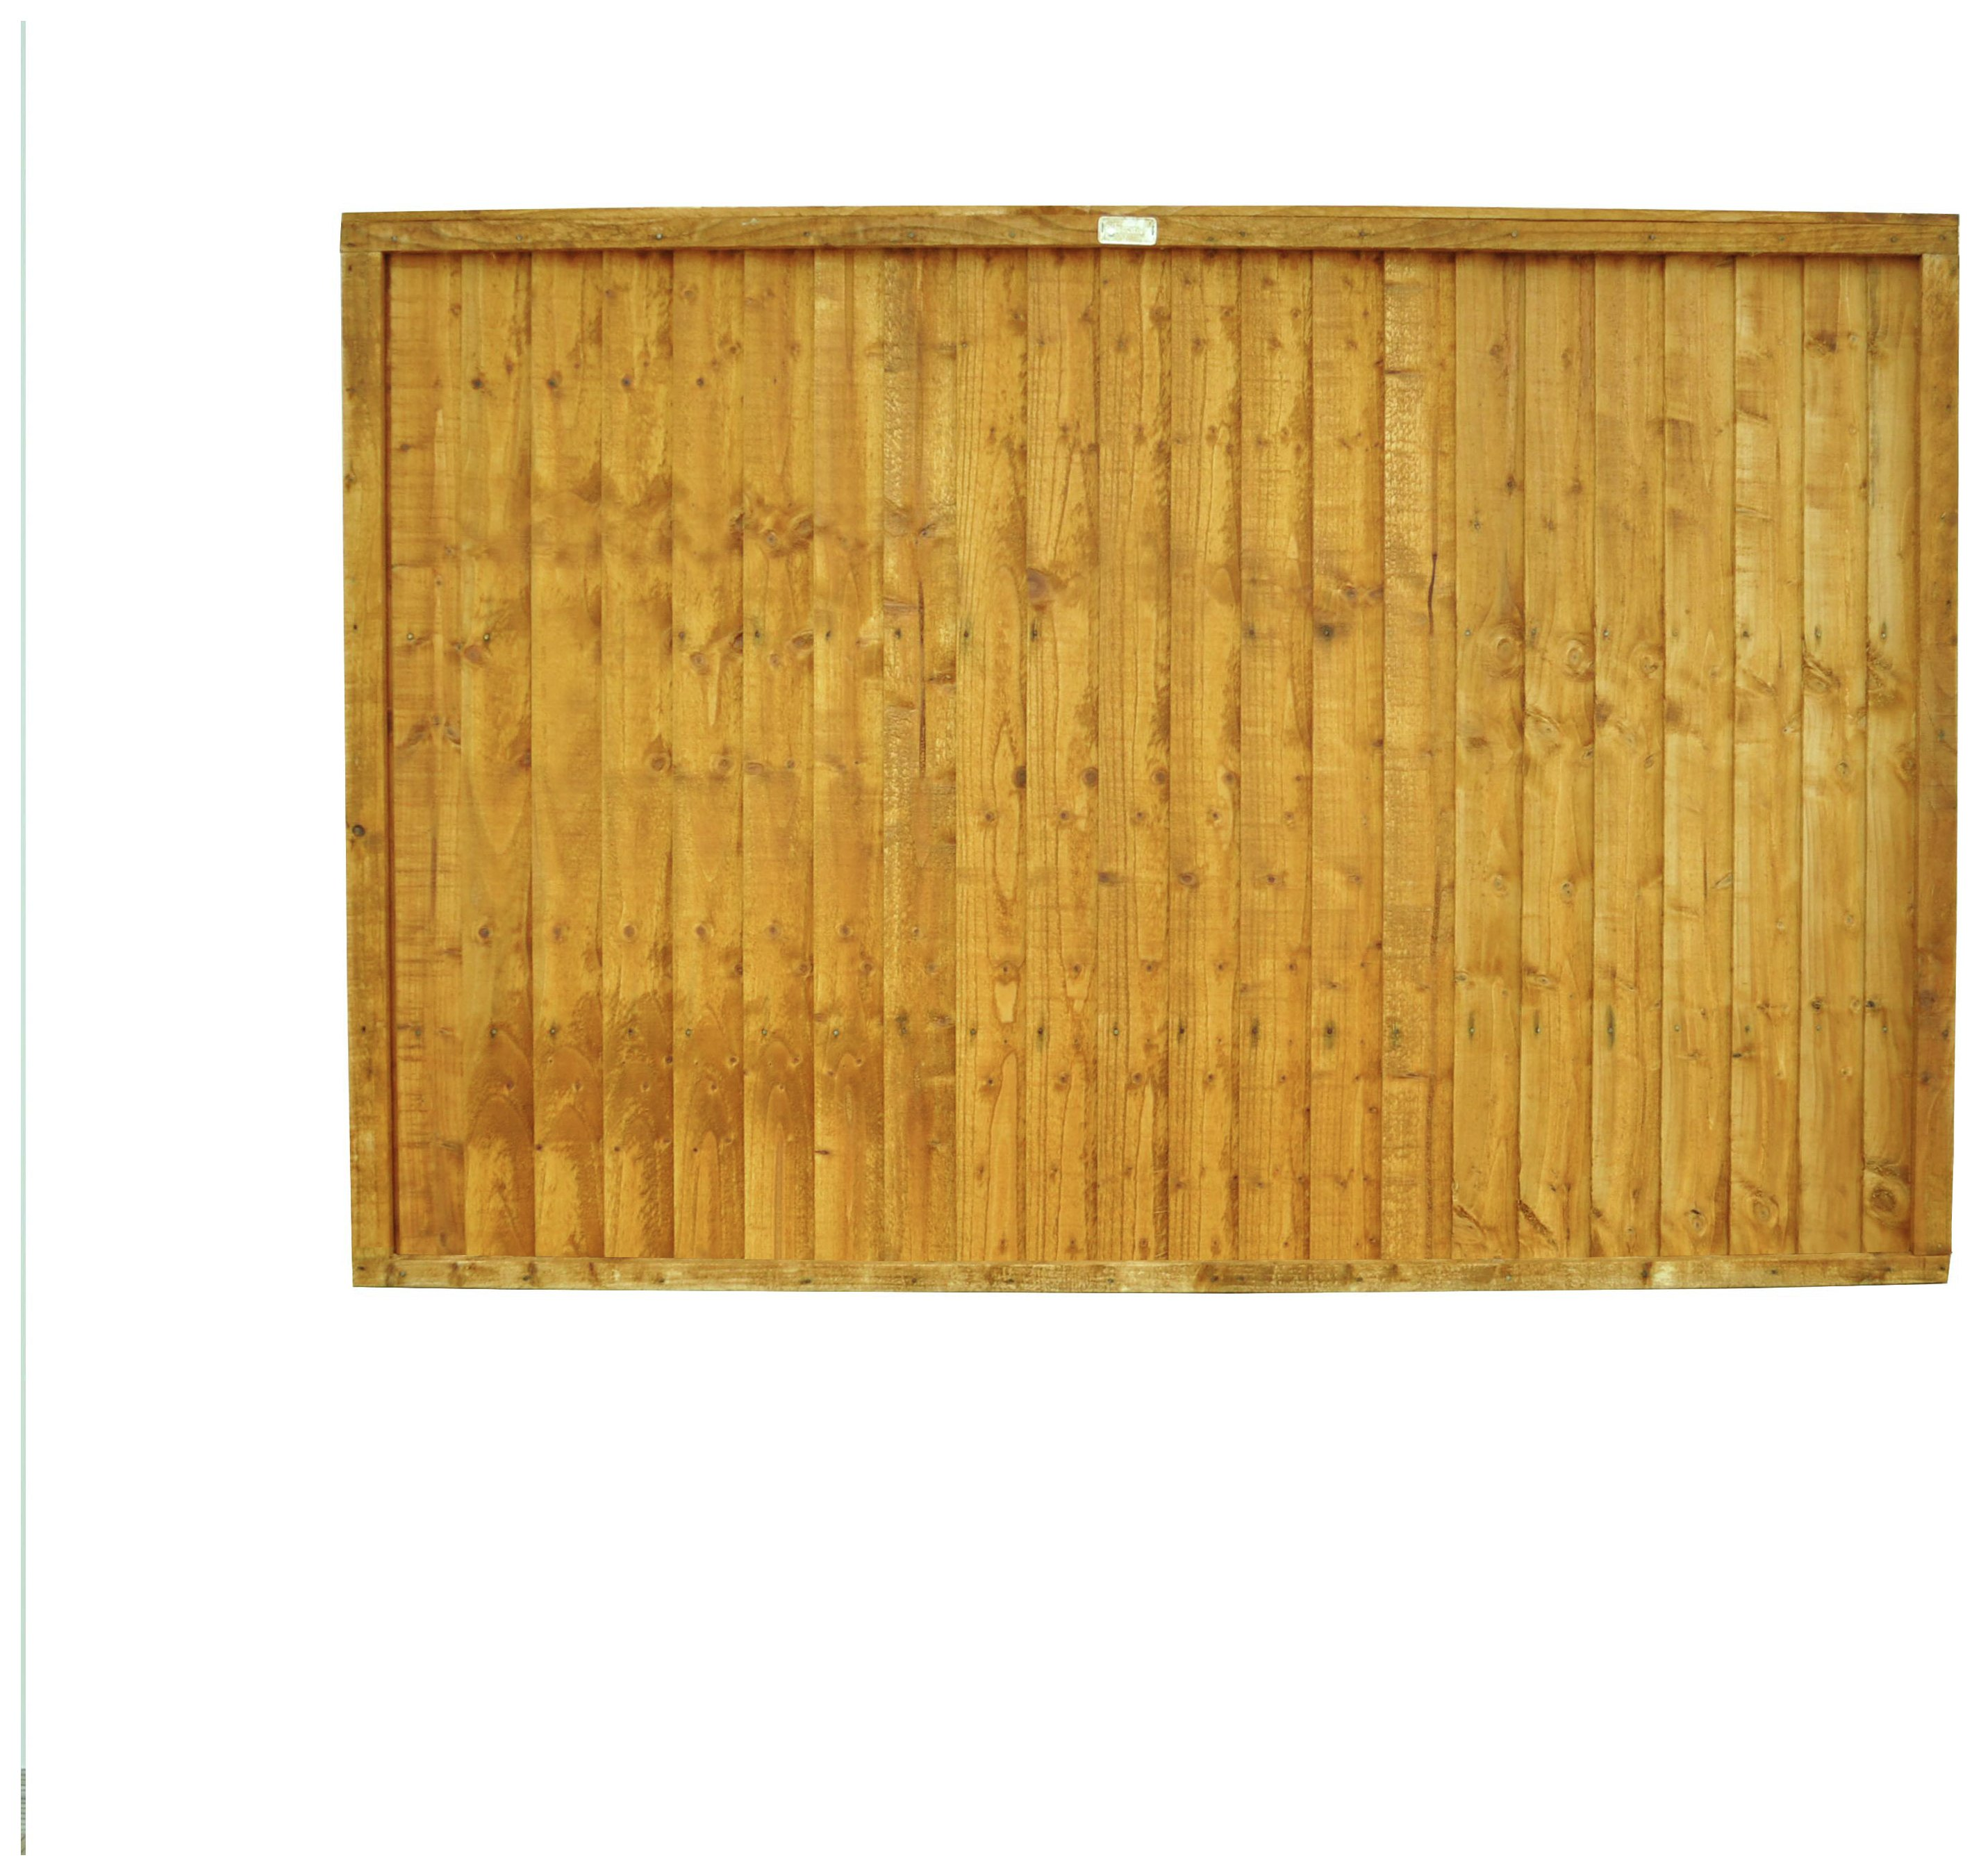 Forest 4ft (1.22m) Closeboard Fence Panel - Pack of 4